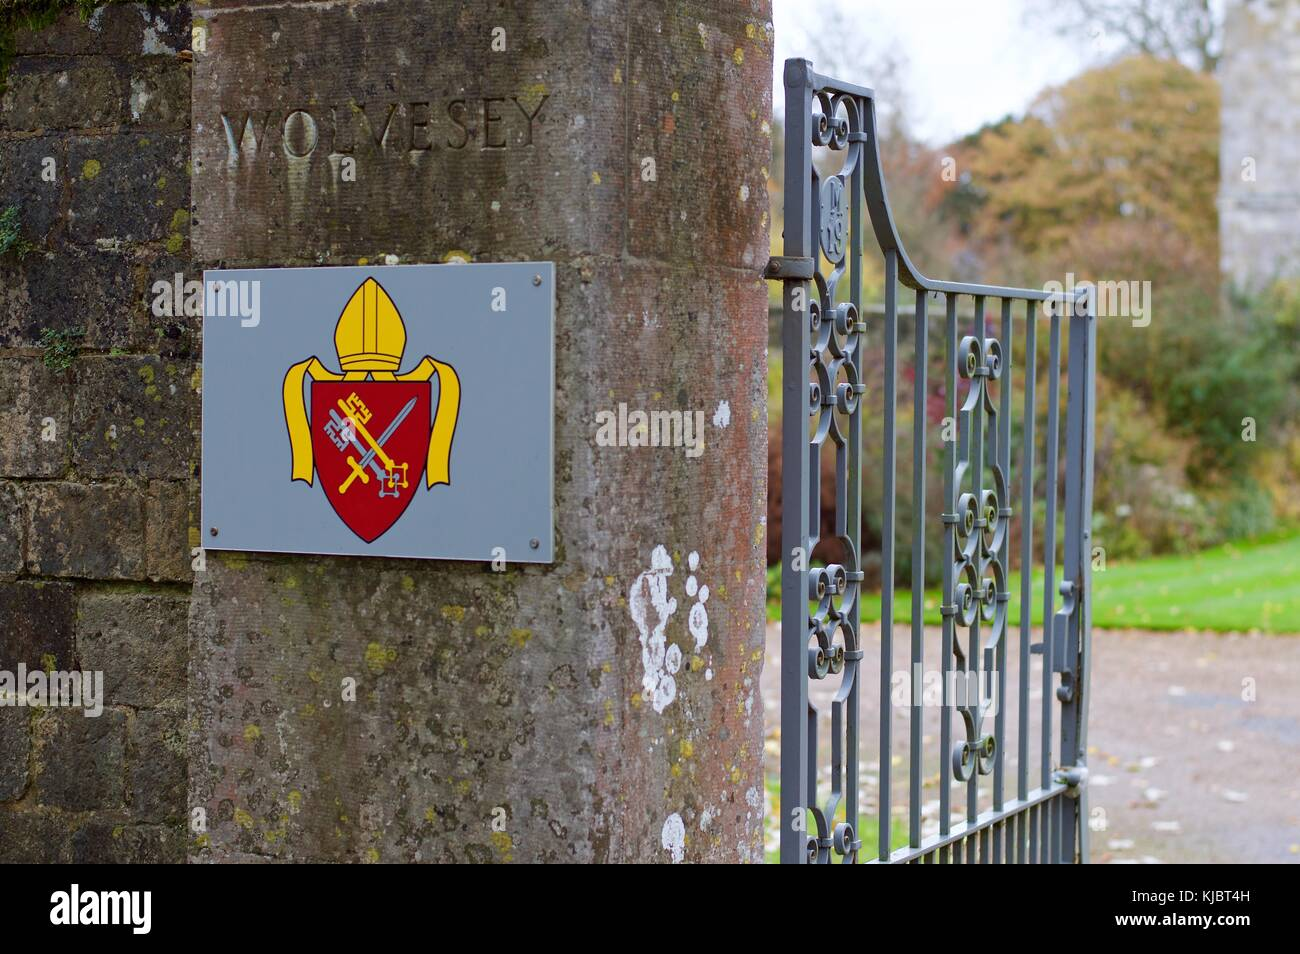 Crest of Wolvesey Castle next to open gates, Winchester, UK Stock Photo